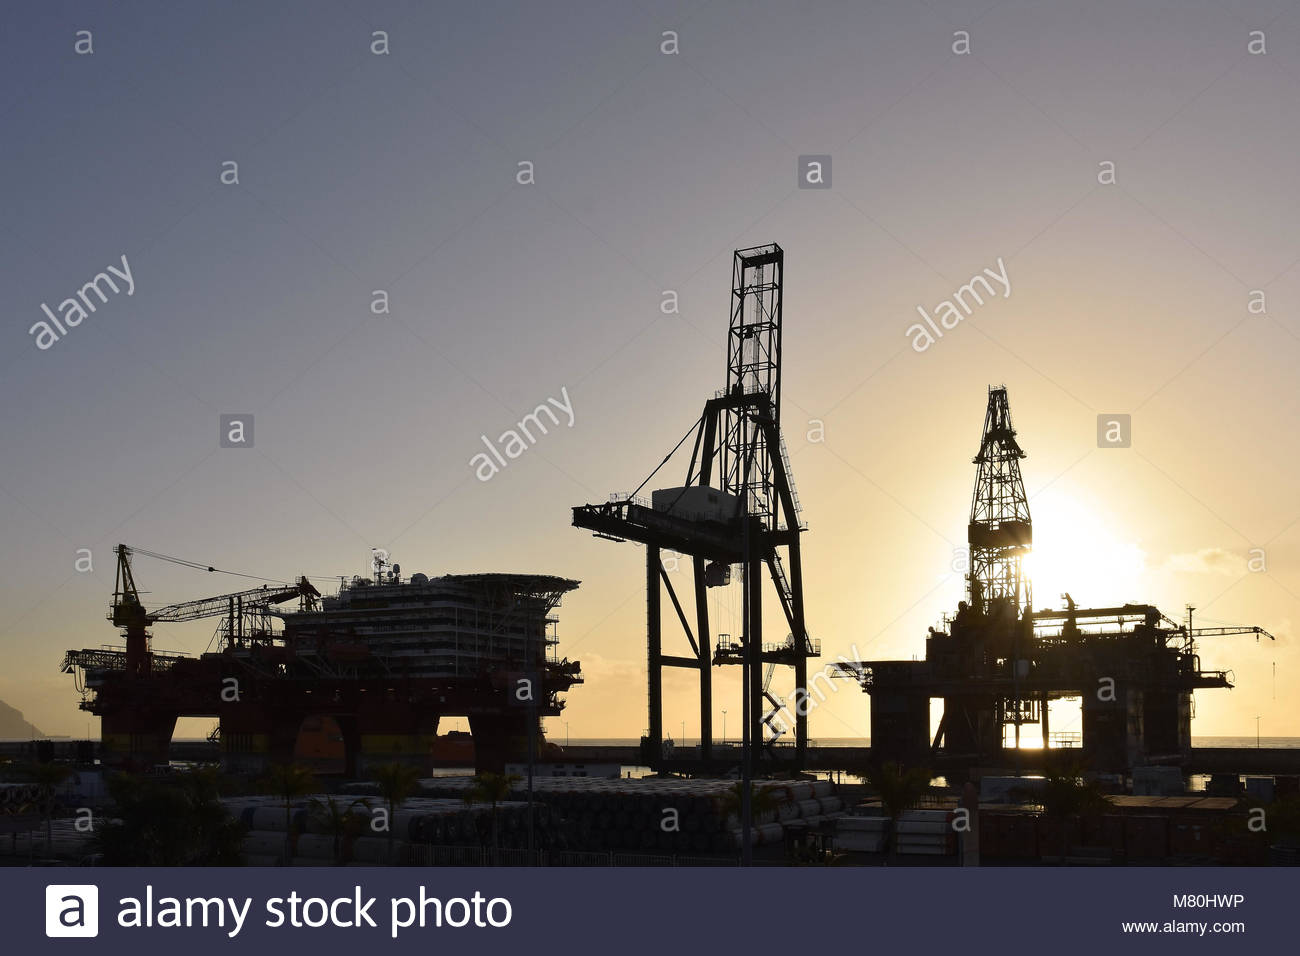 Cranes and oil rig platforms silhouetted against morning sun in the port of Santa Cruz de Tenerife Canary Islands - Stock Image